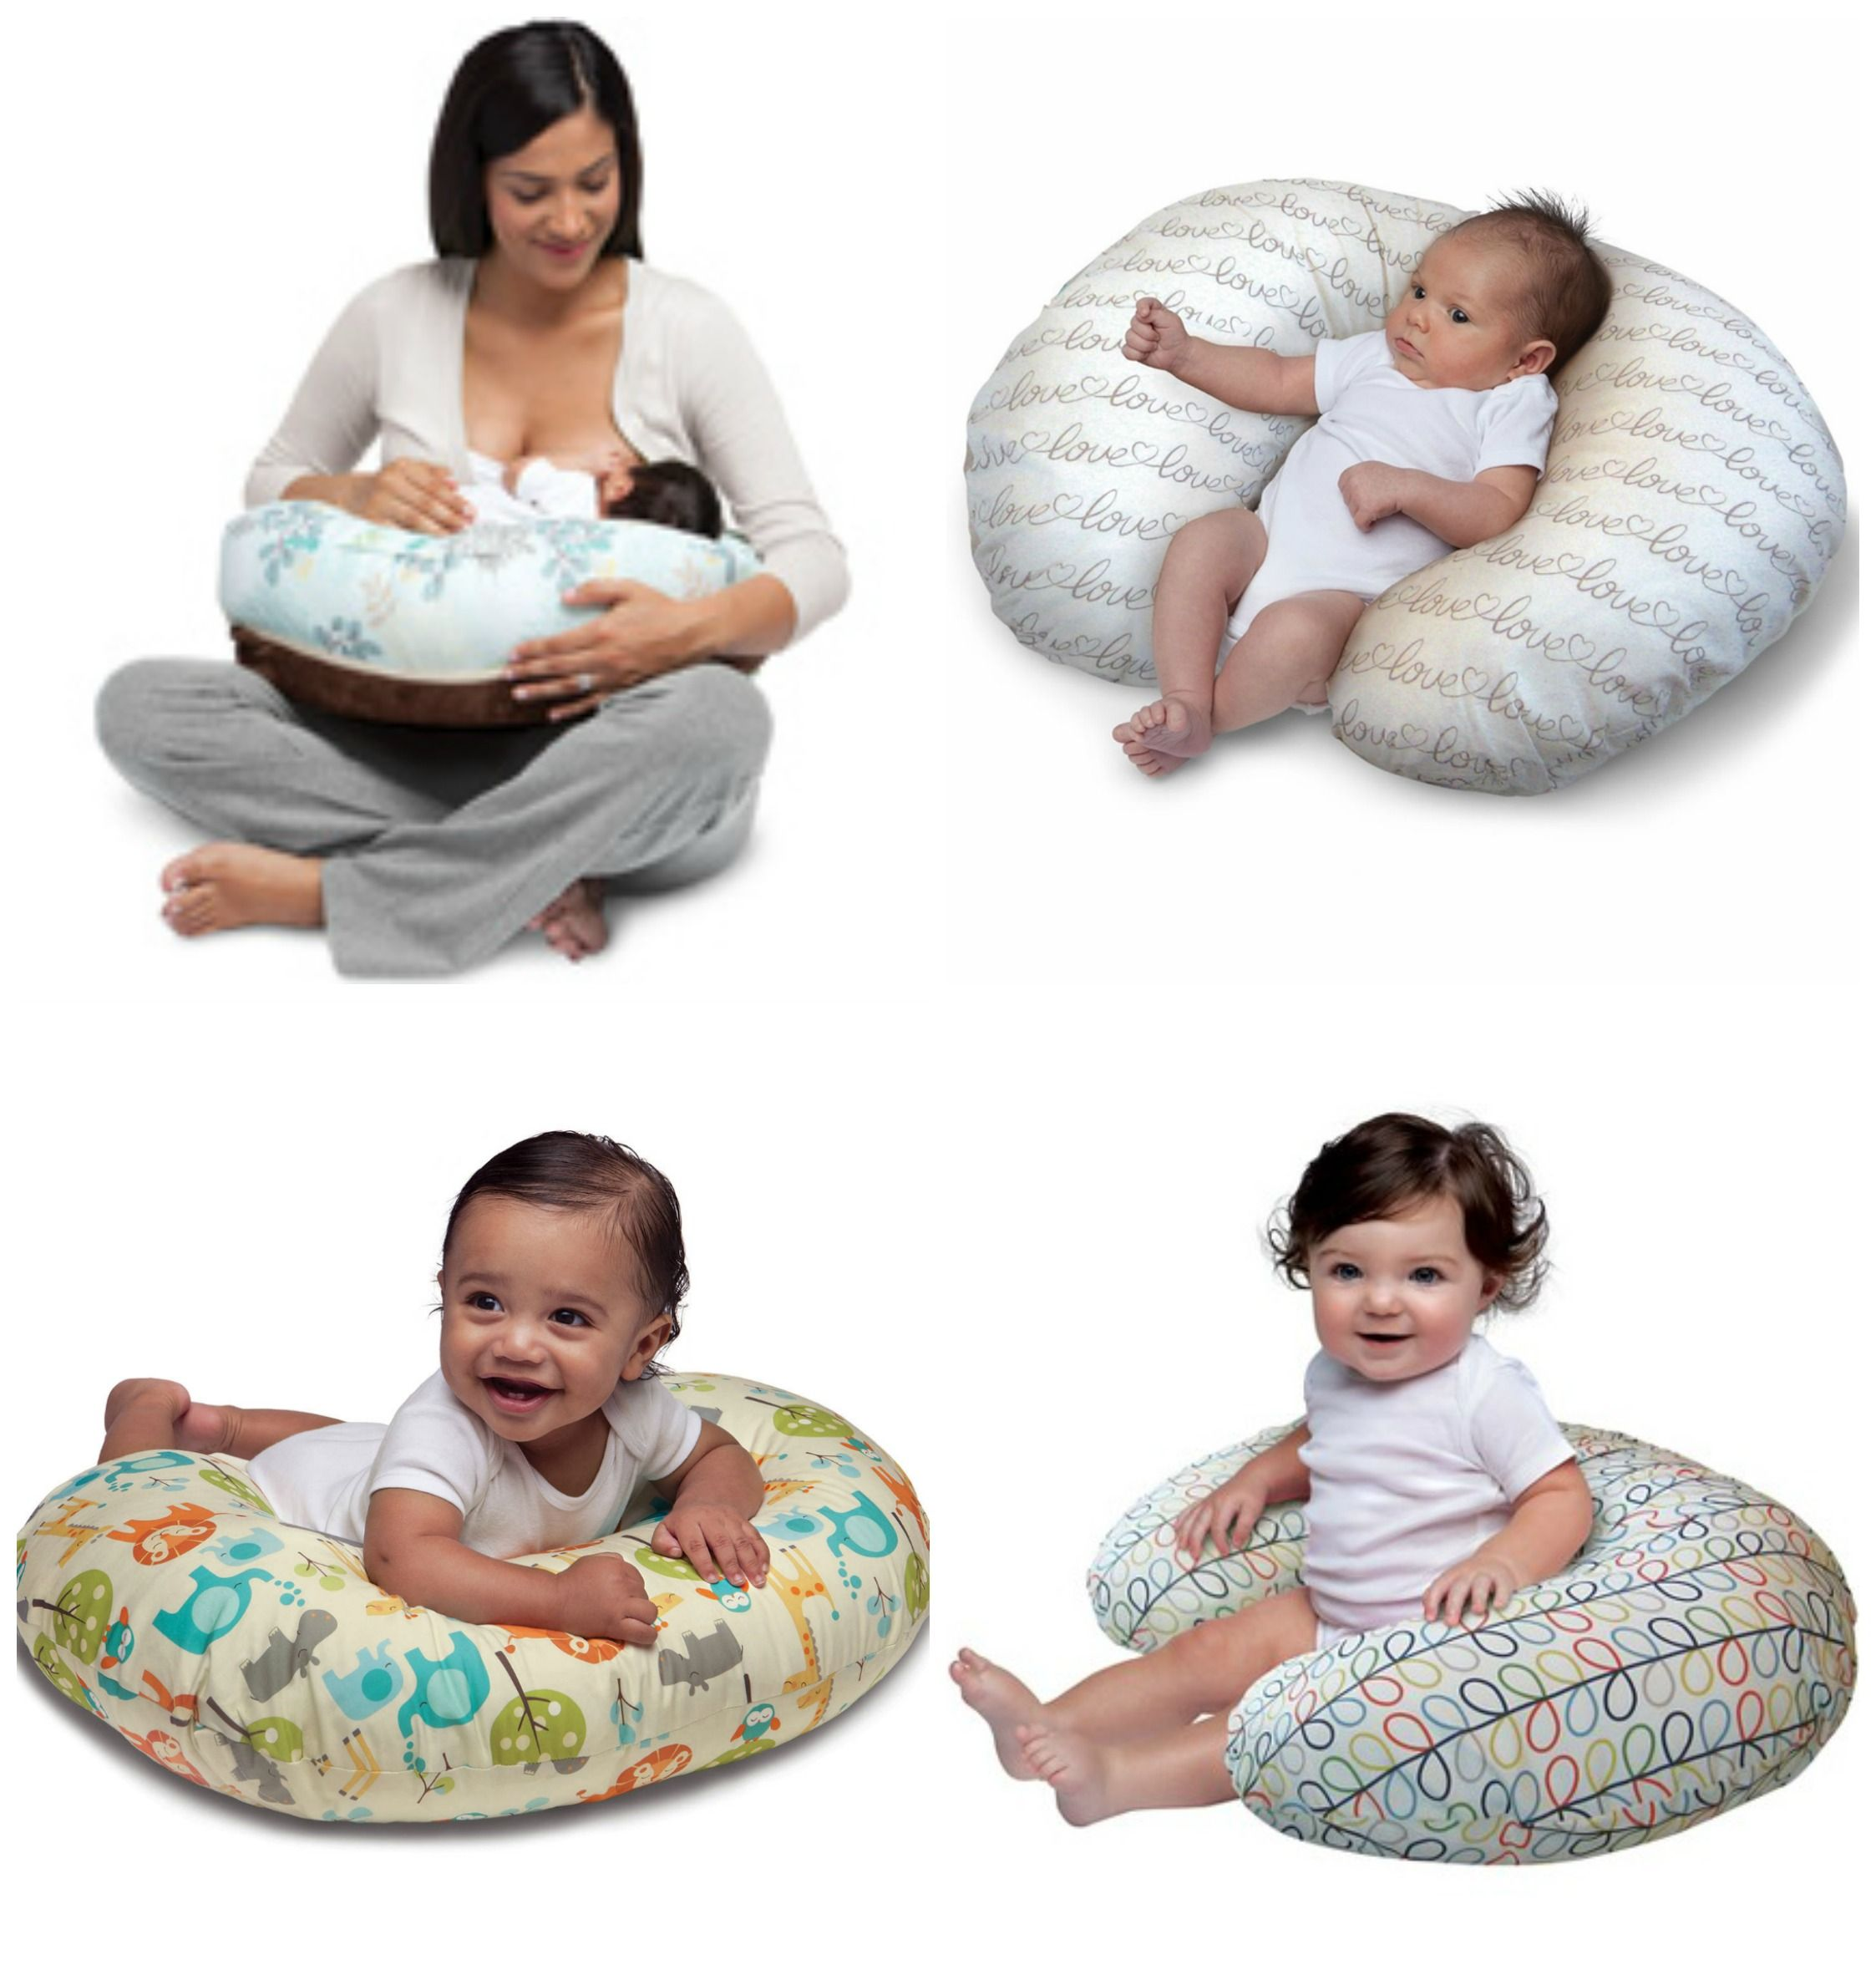 our list of the best nursing pillows includes the boppy pillow why we love it bond with your new baby with the boppy original nursing pillow